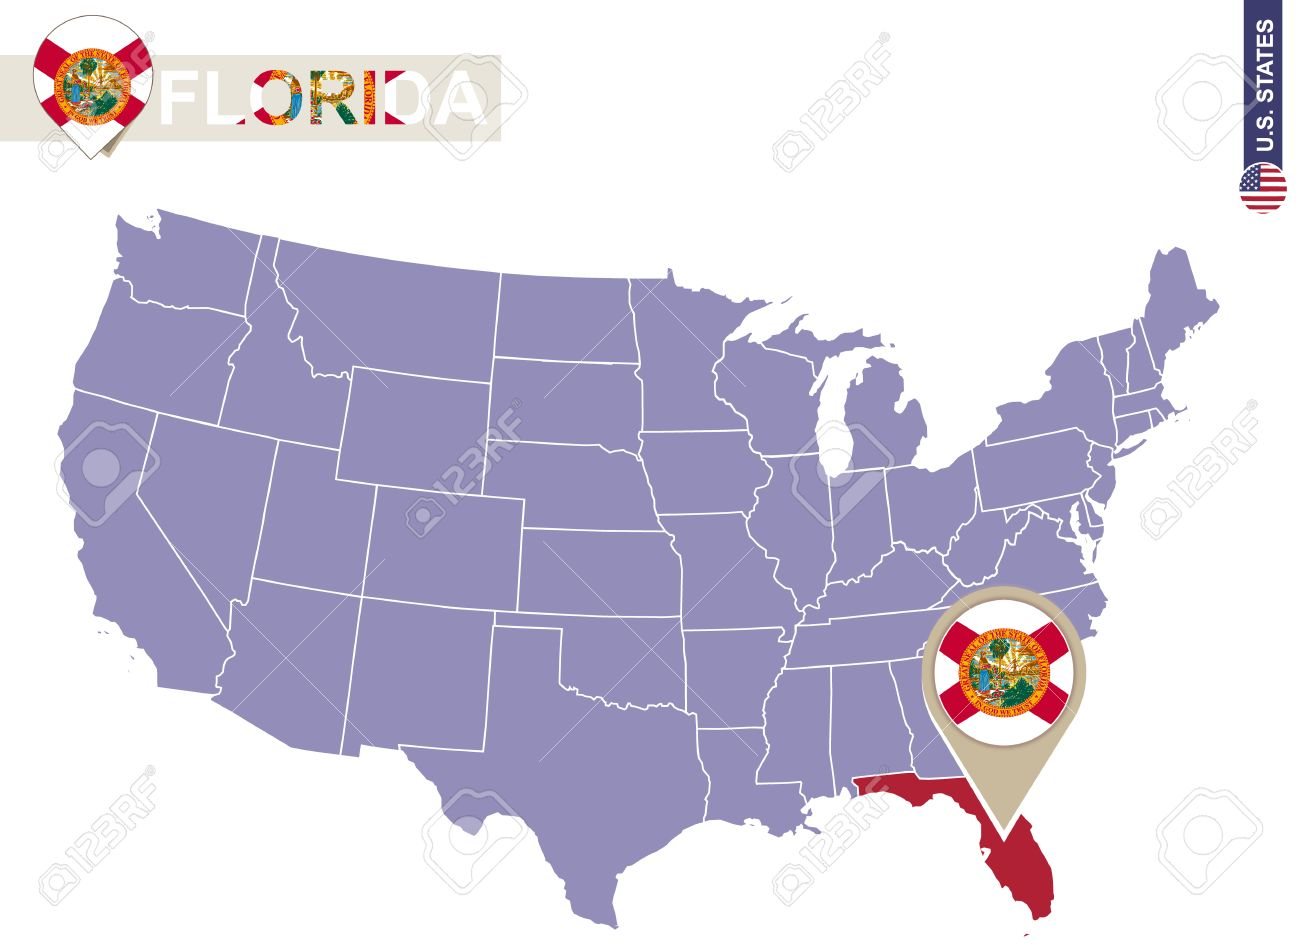 Florida State On Usa Map Florida Flag And Map Us States Royalty - Florida-map-us